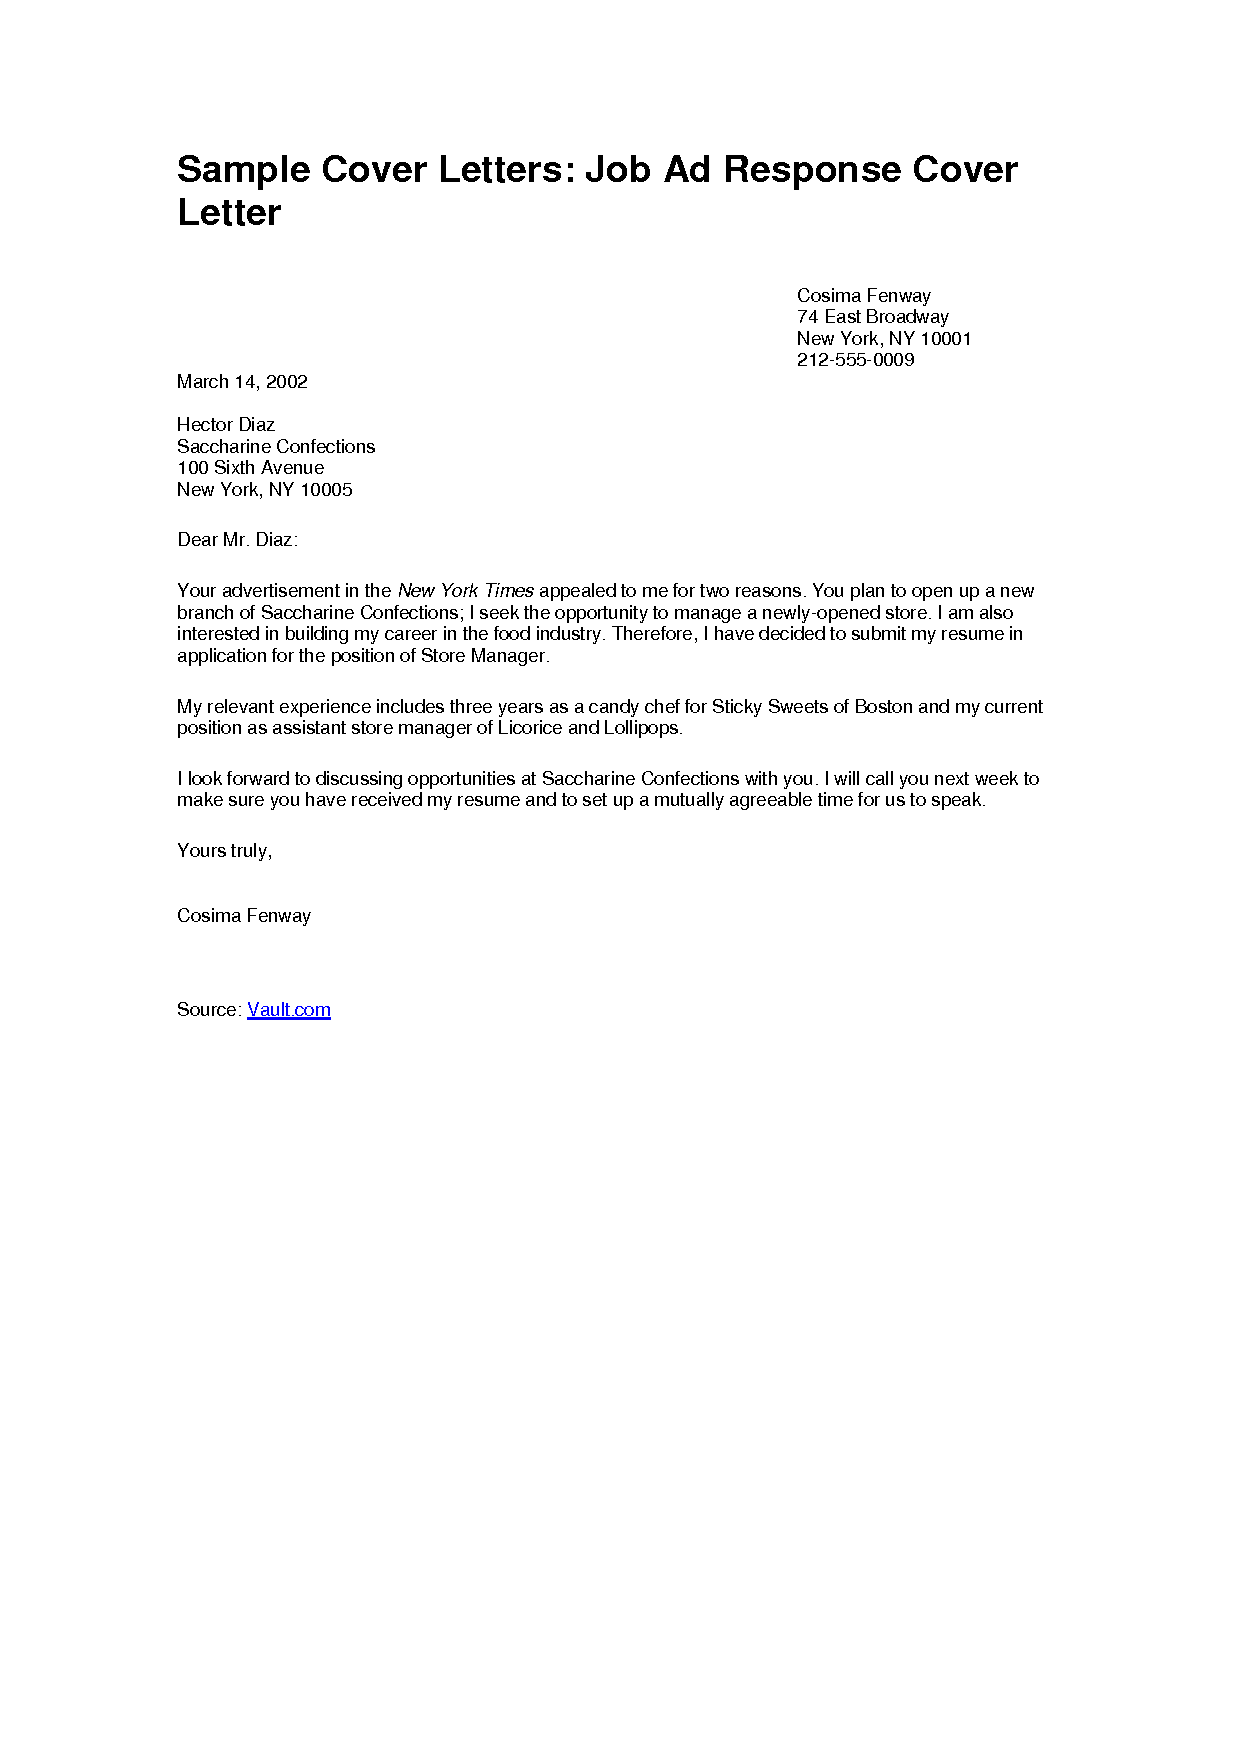 COVER LETTER EXAMPLES FOR JOBS Cover Letter GuideCover Letter ...